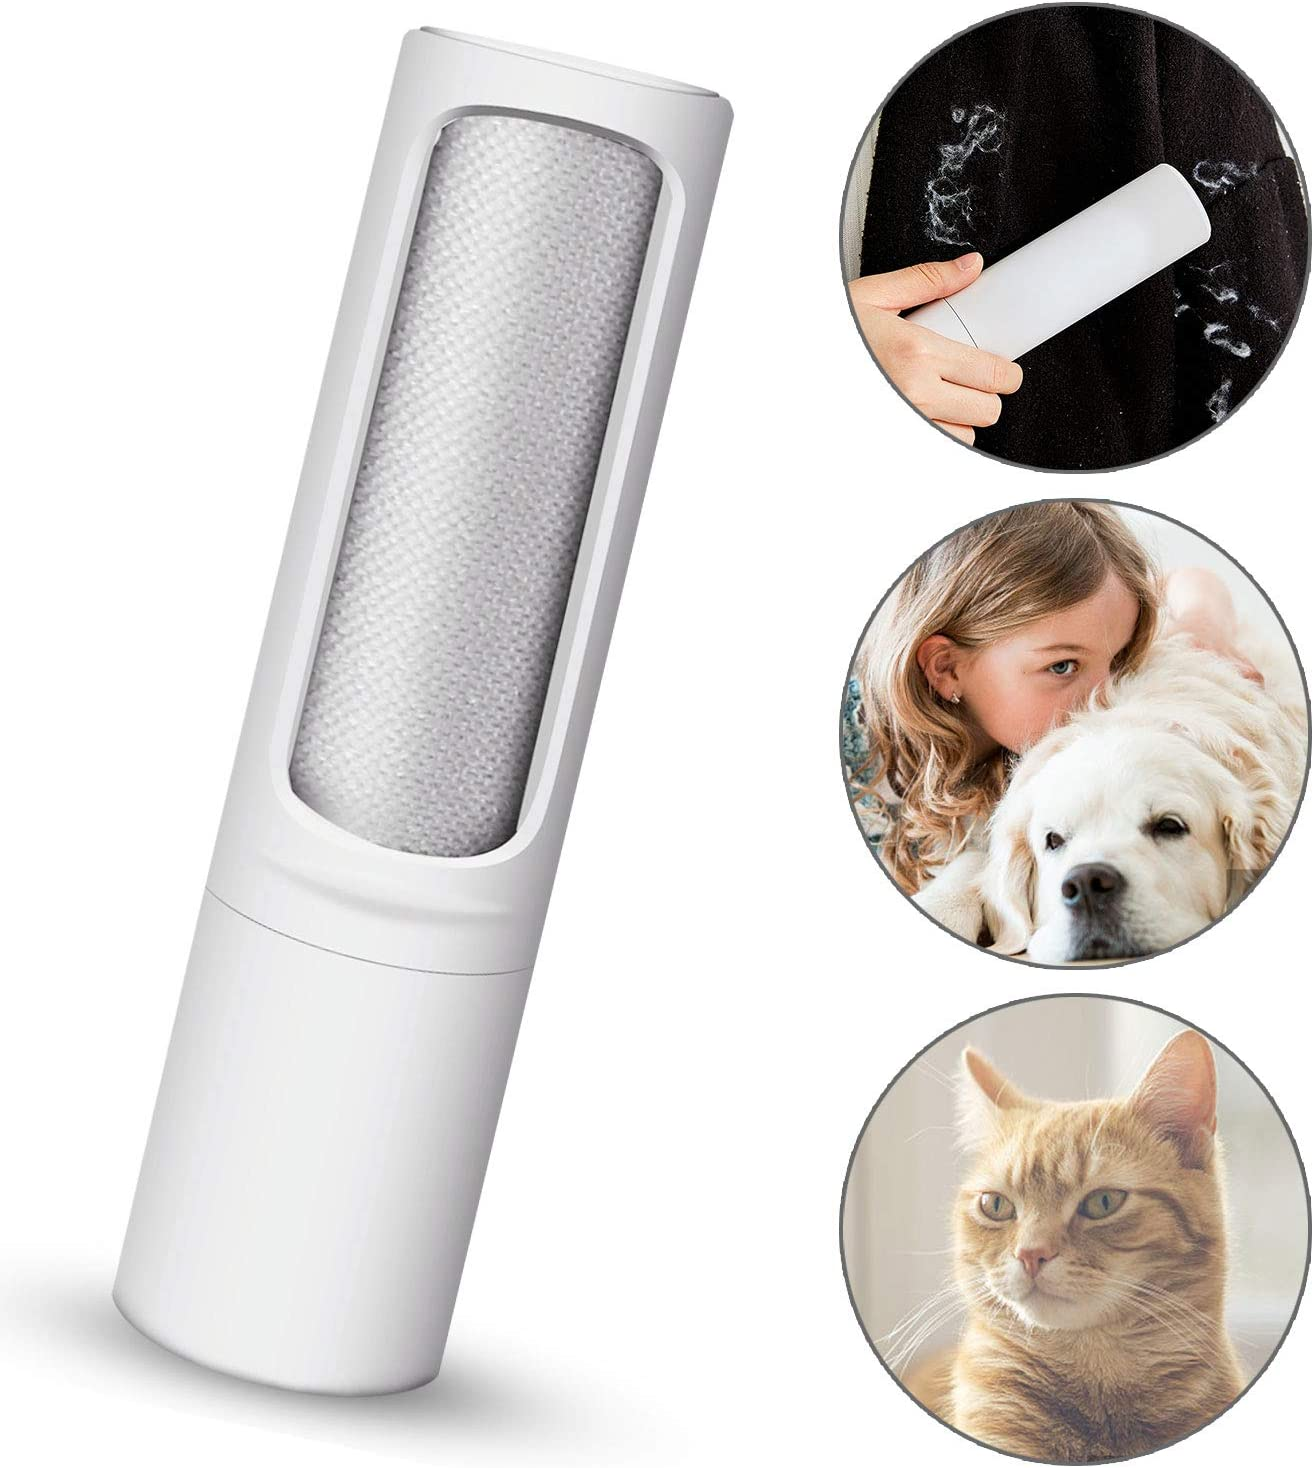 Pet Hair Remover Brush - Reusable Travel lint brush with self cleaning,Lint Roller Brush for Dog & Cat Hair Removal/Carpet/Car Seat/Clothes/Furniture